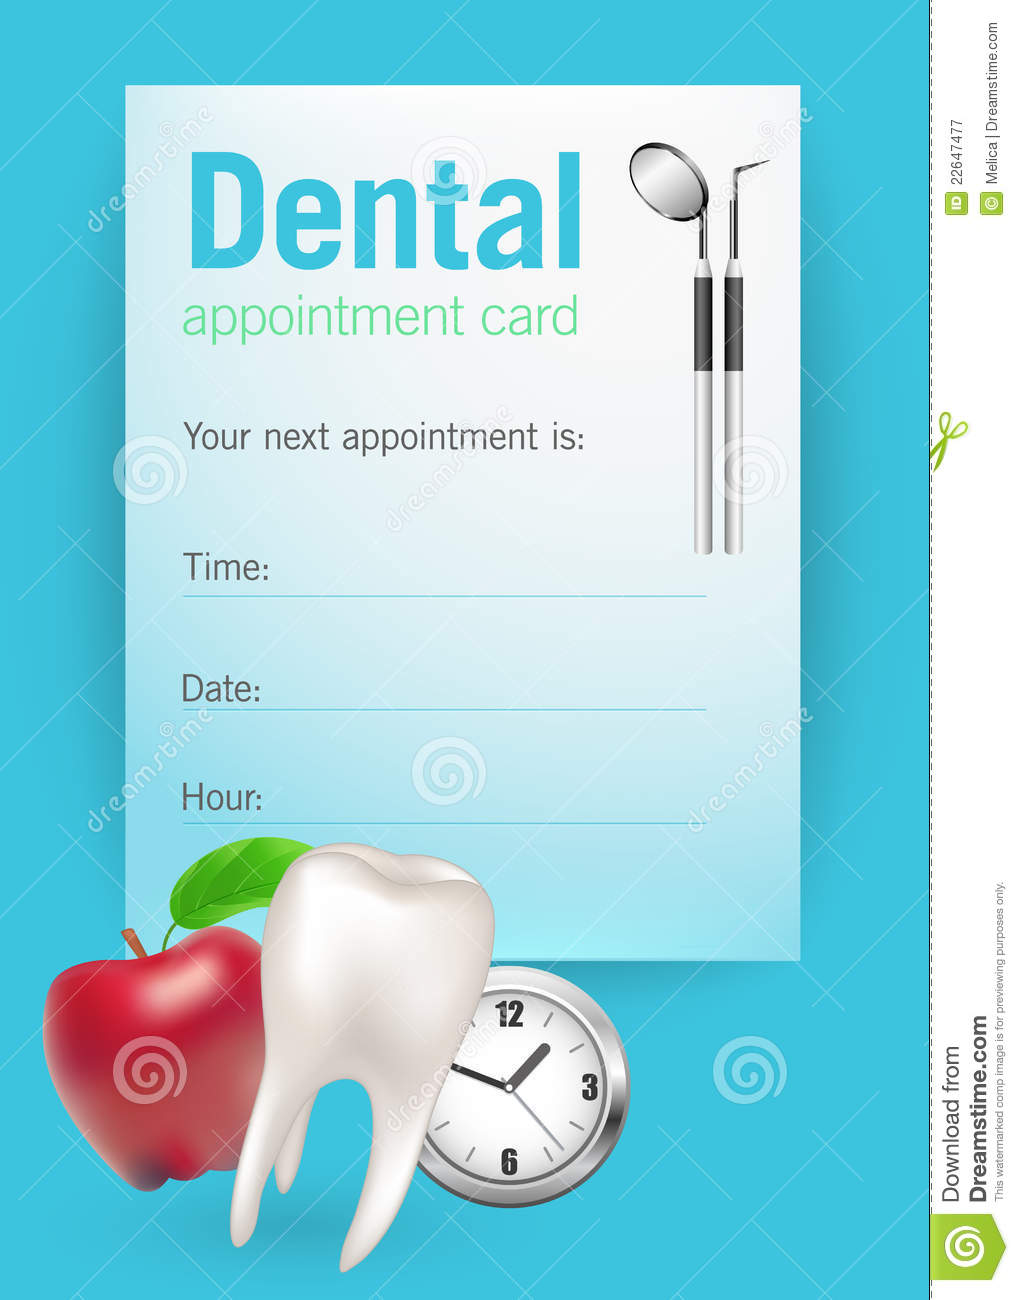 medical appointment card template free - dental appointment card royalty free stock photography